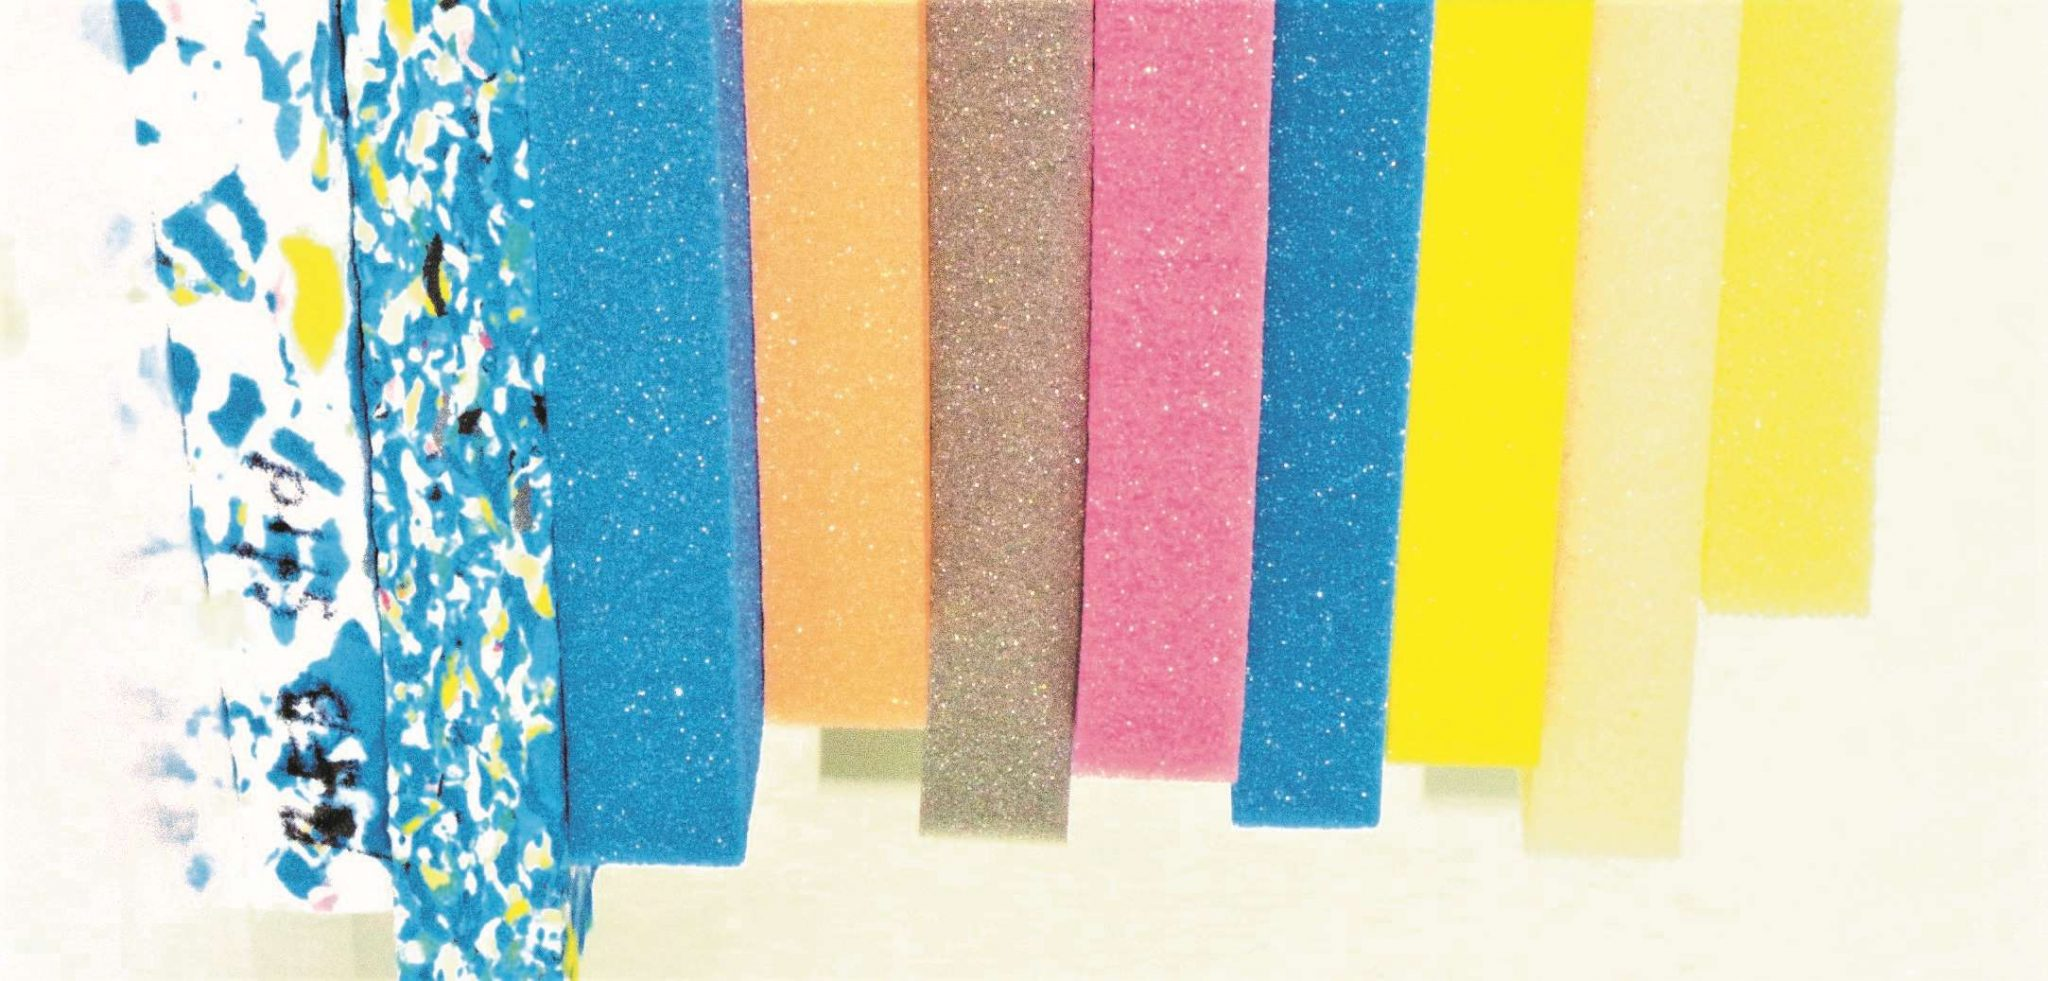 Choosing the Right Foam For Your Business Needs